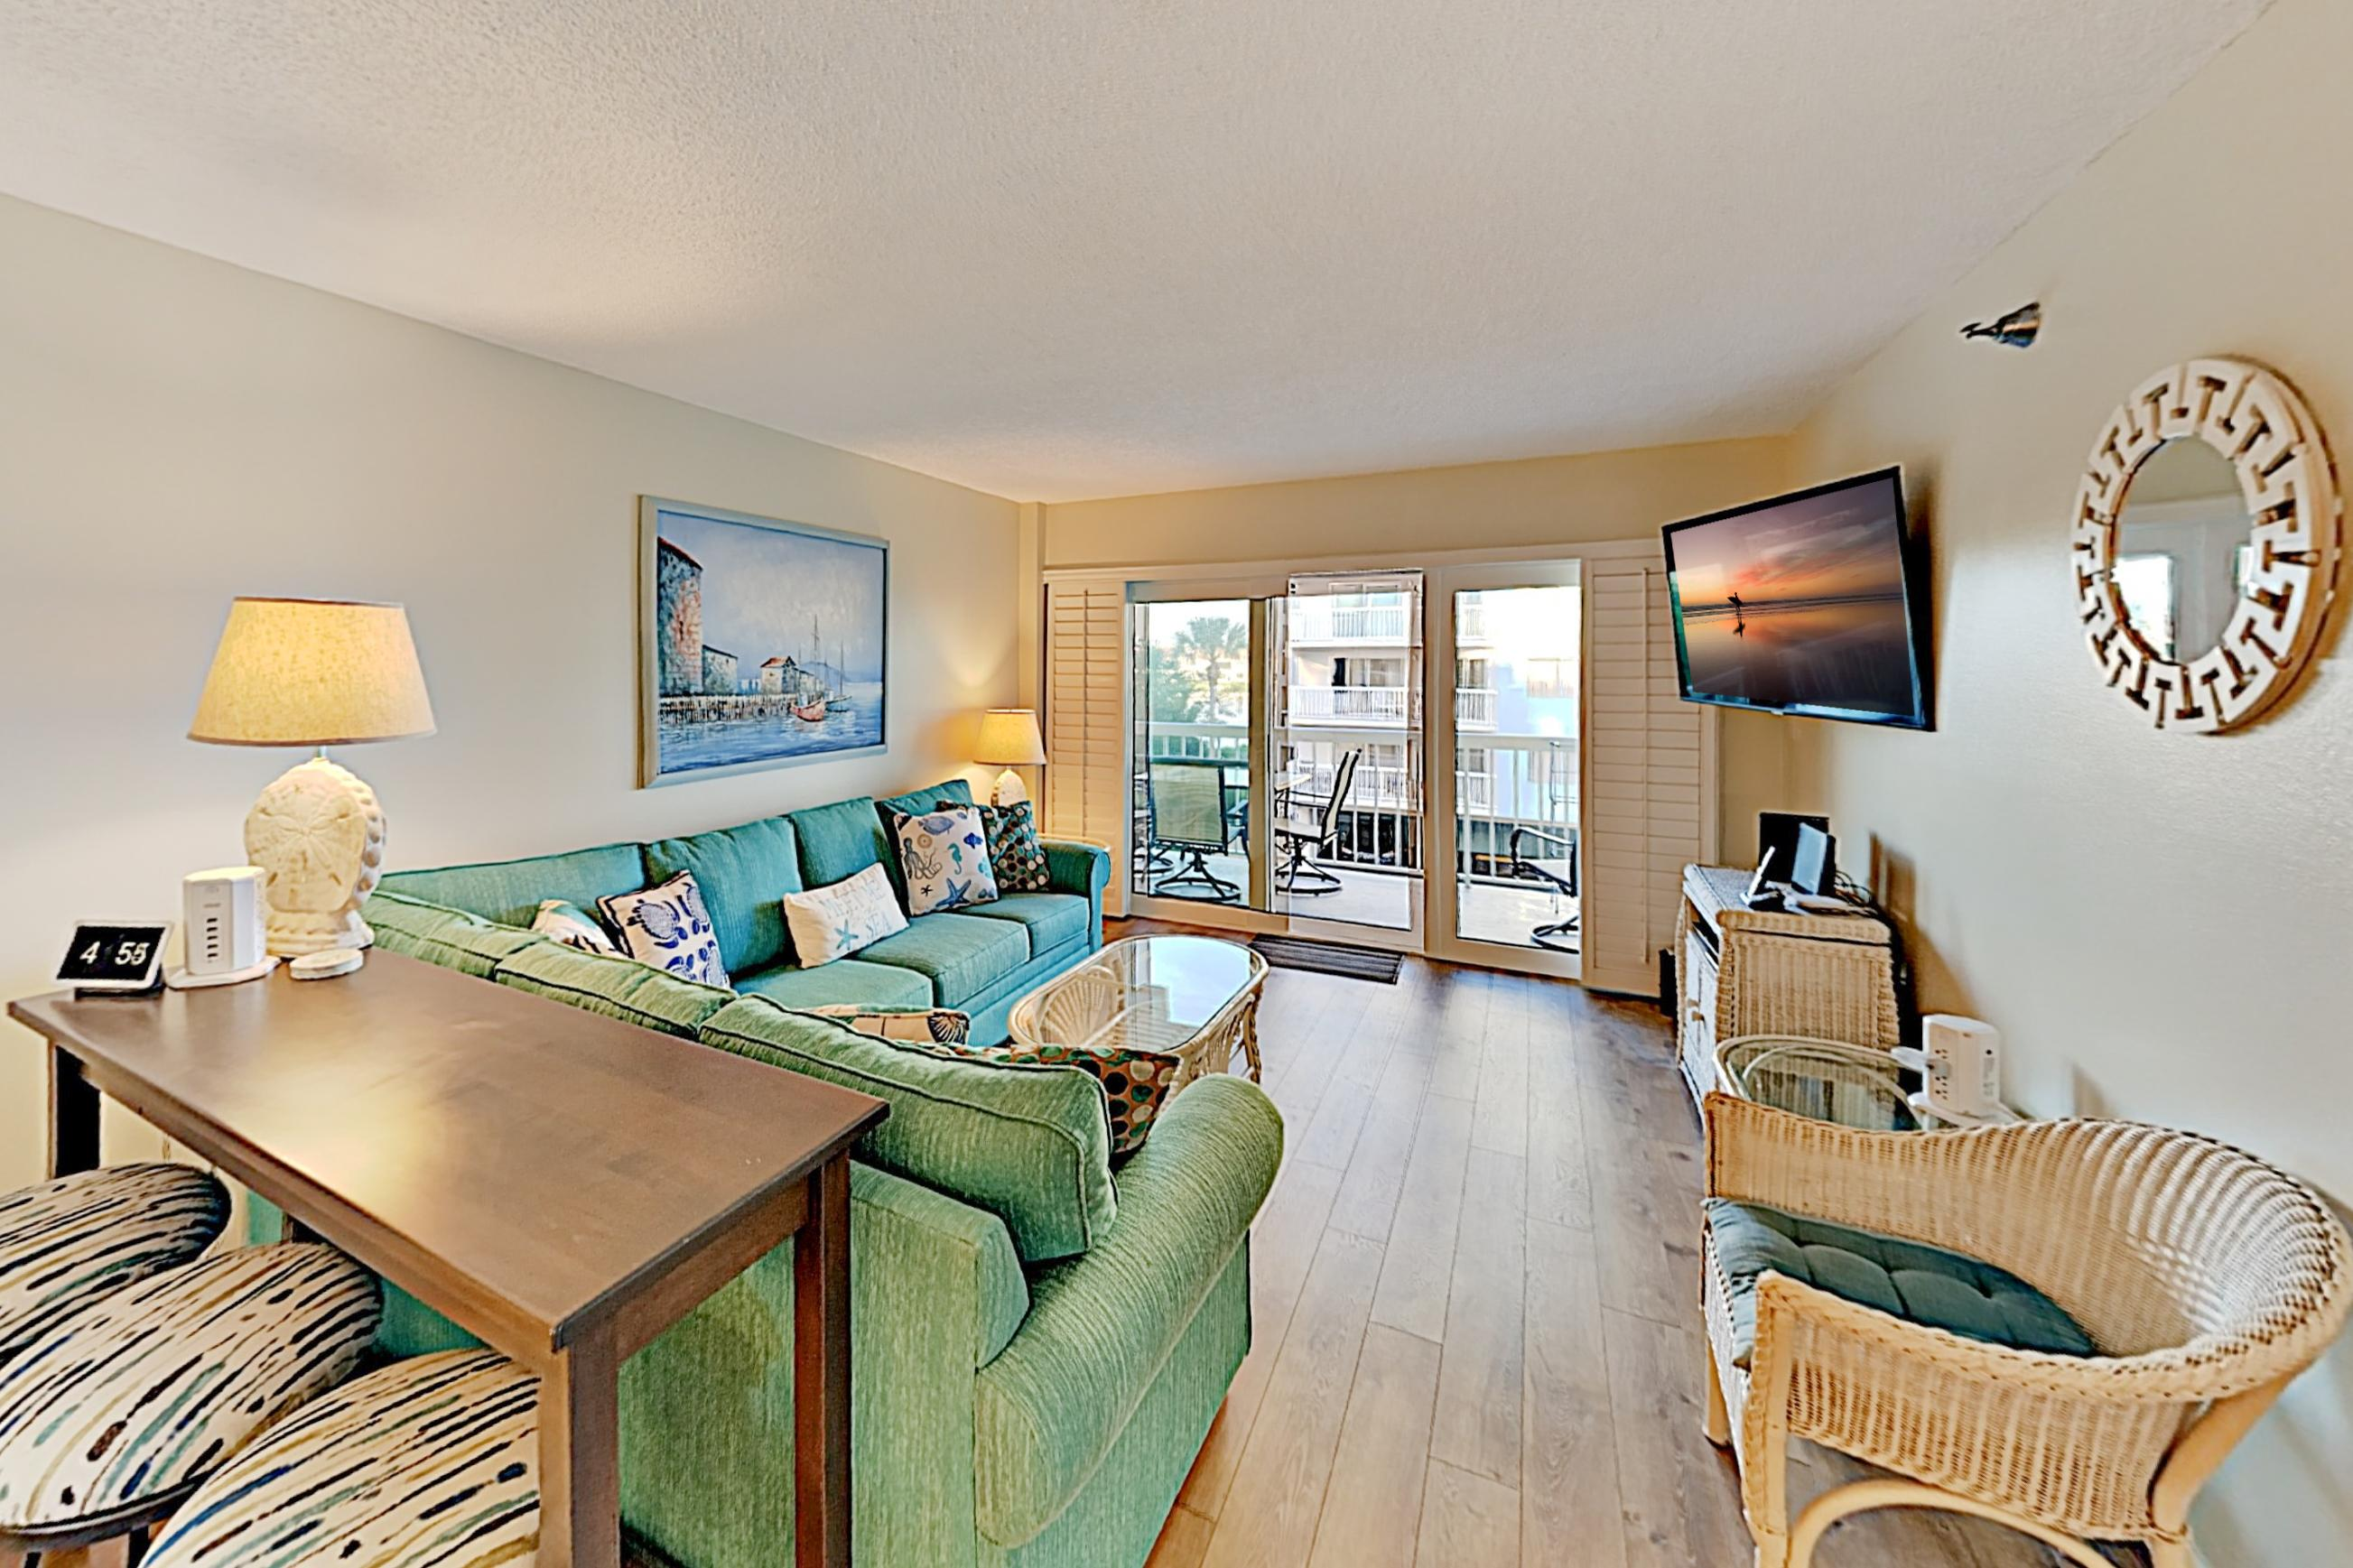 Welcome to Indian Shores! This condo is professionally managed by TurnKey Vacation Rentals.